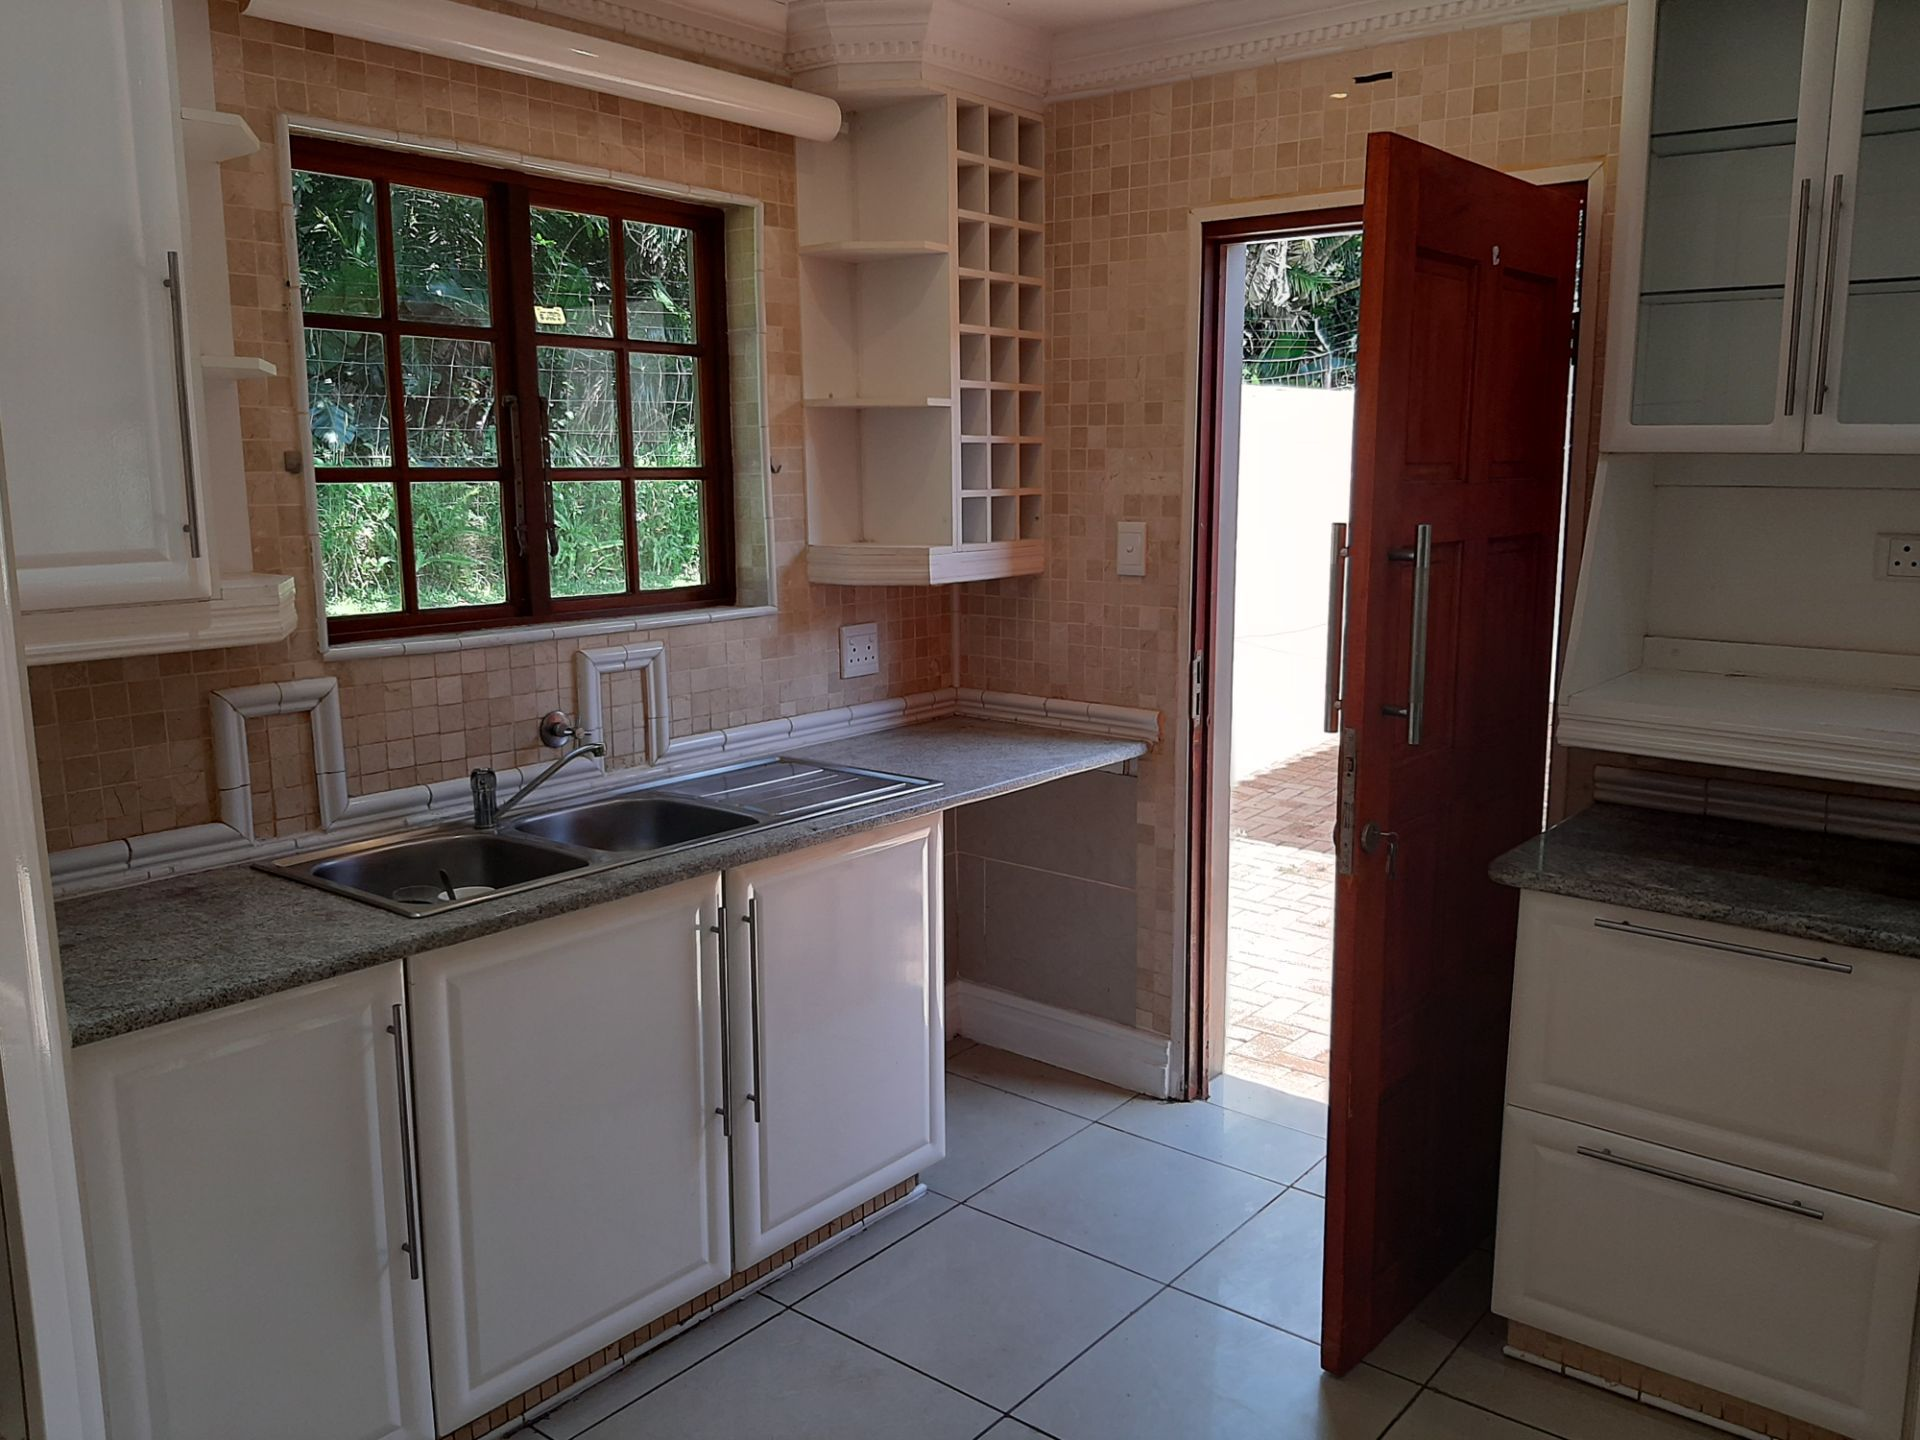 Apartment in Southbroom - Kitchen and Courtyard